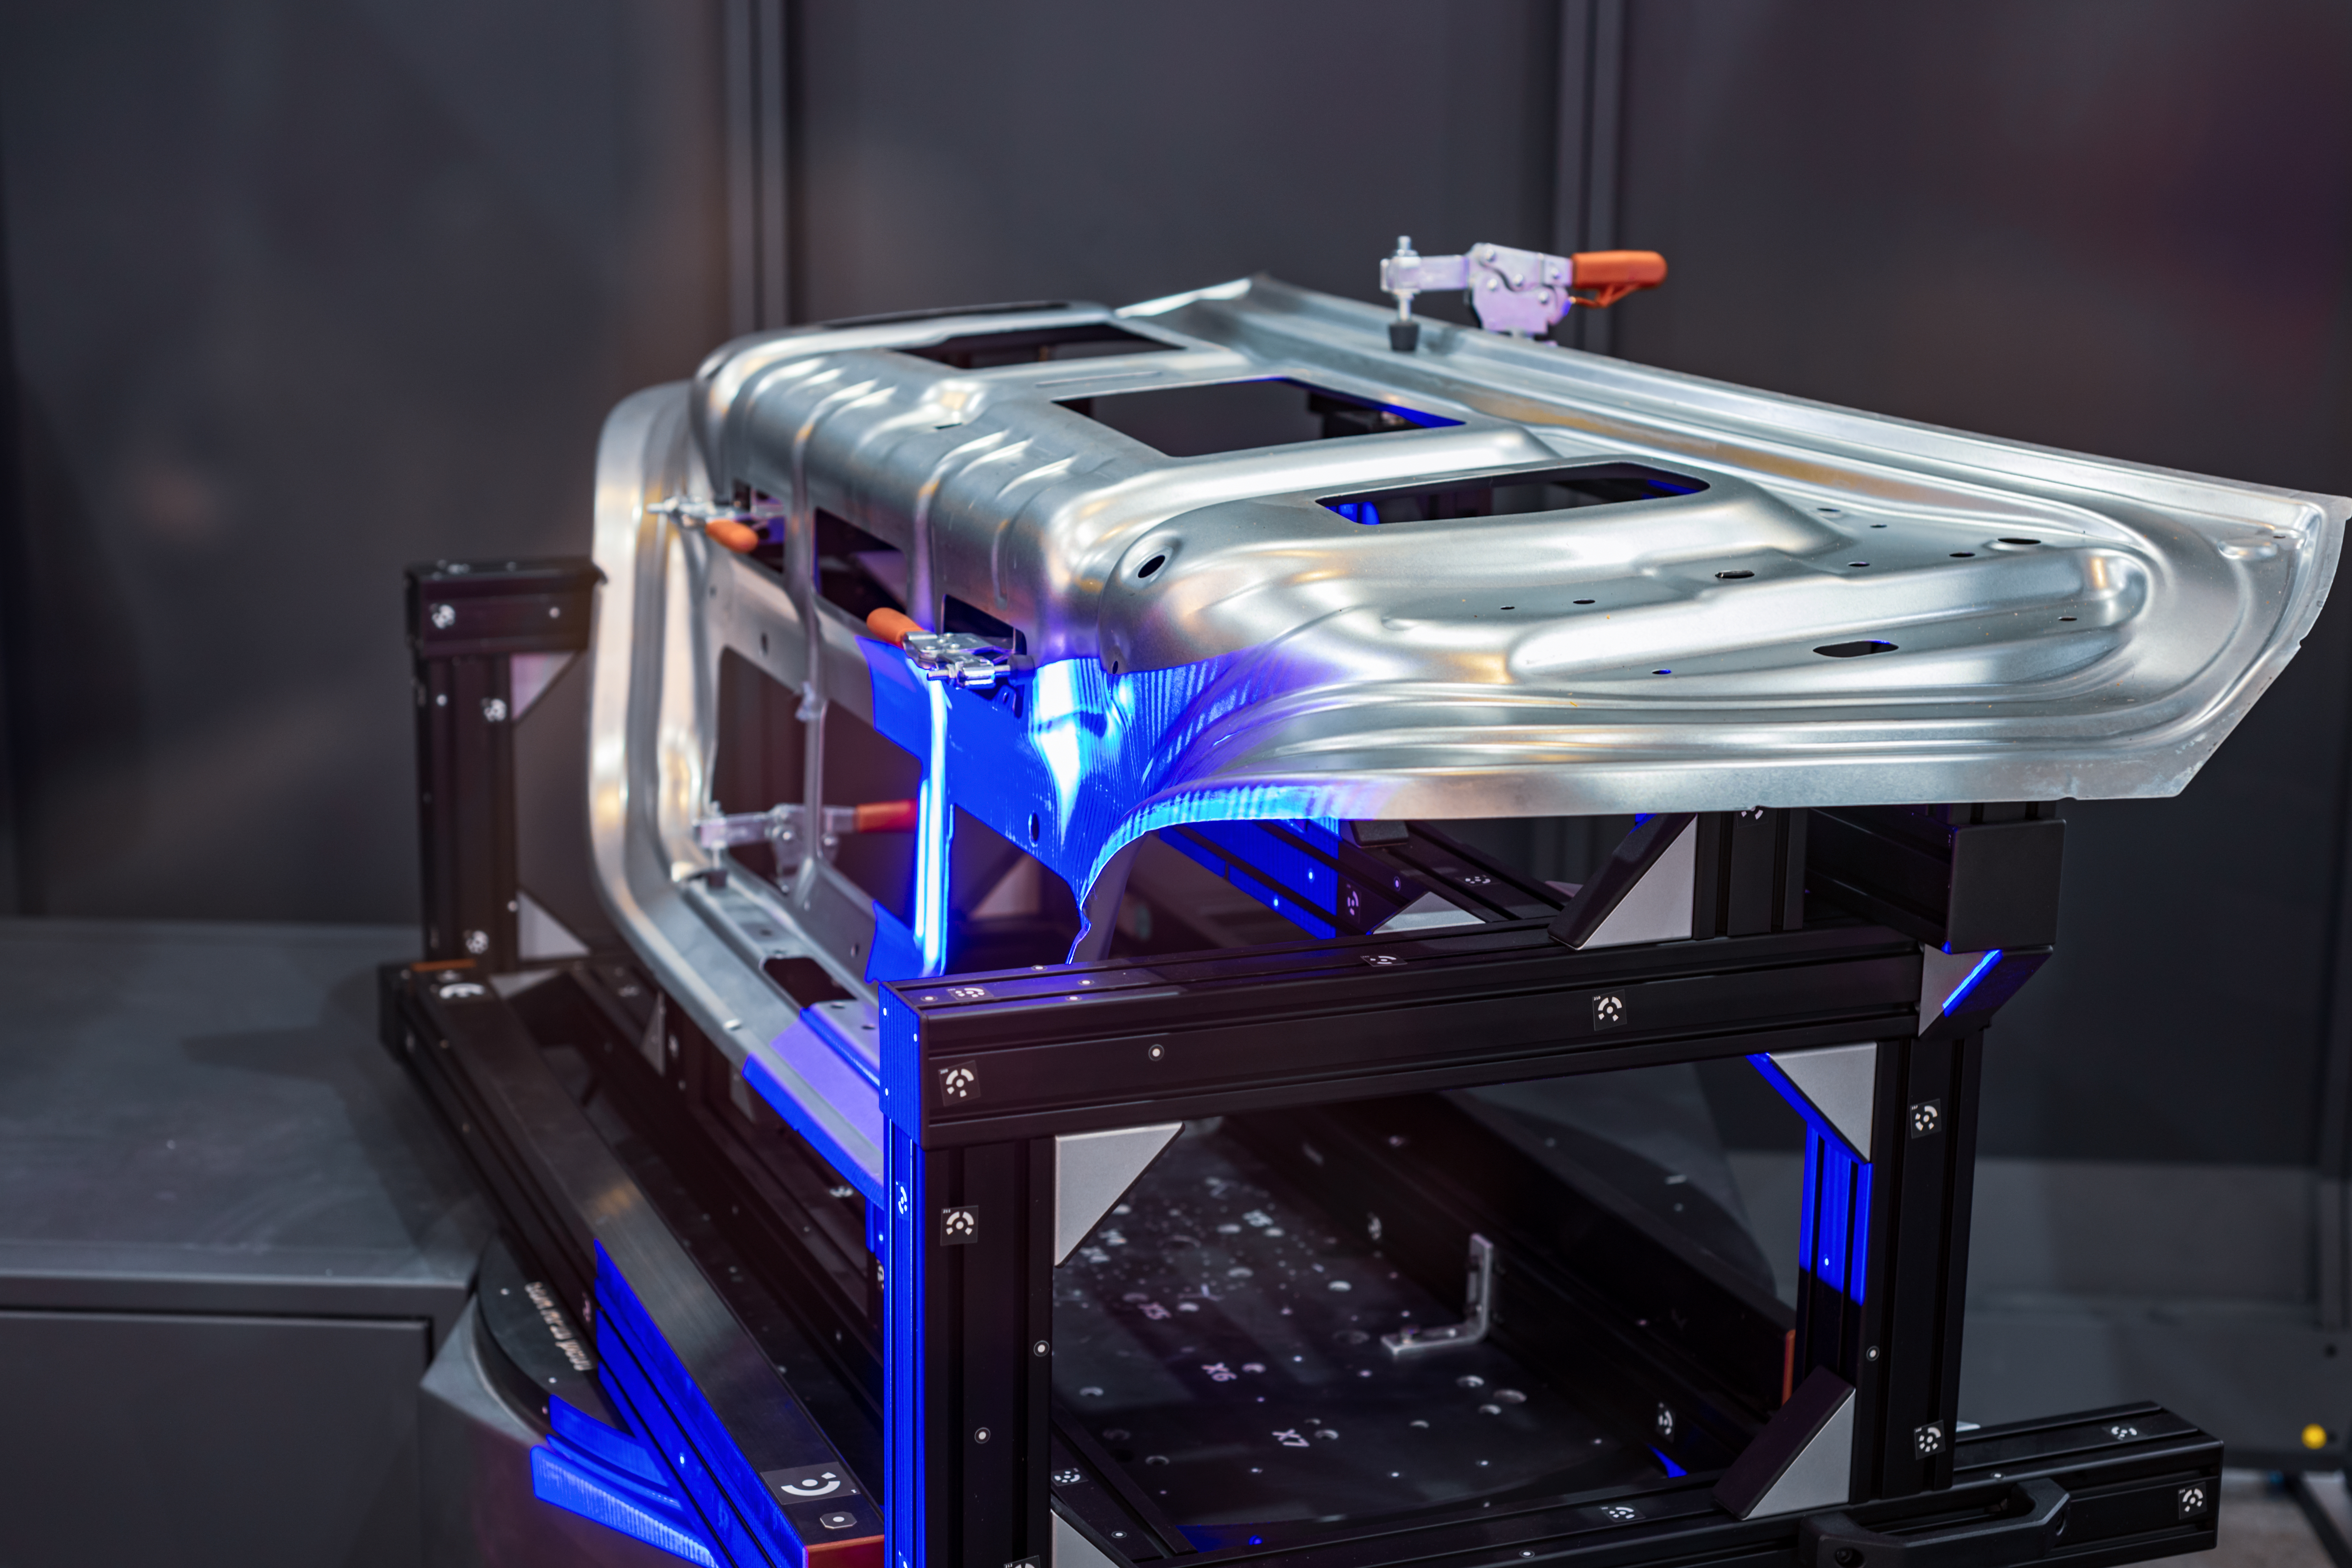 Beside projection lenses and light engines used in many different industries like 3D printing, In-Vision designs and manufactures projectors for optical metrology systems